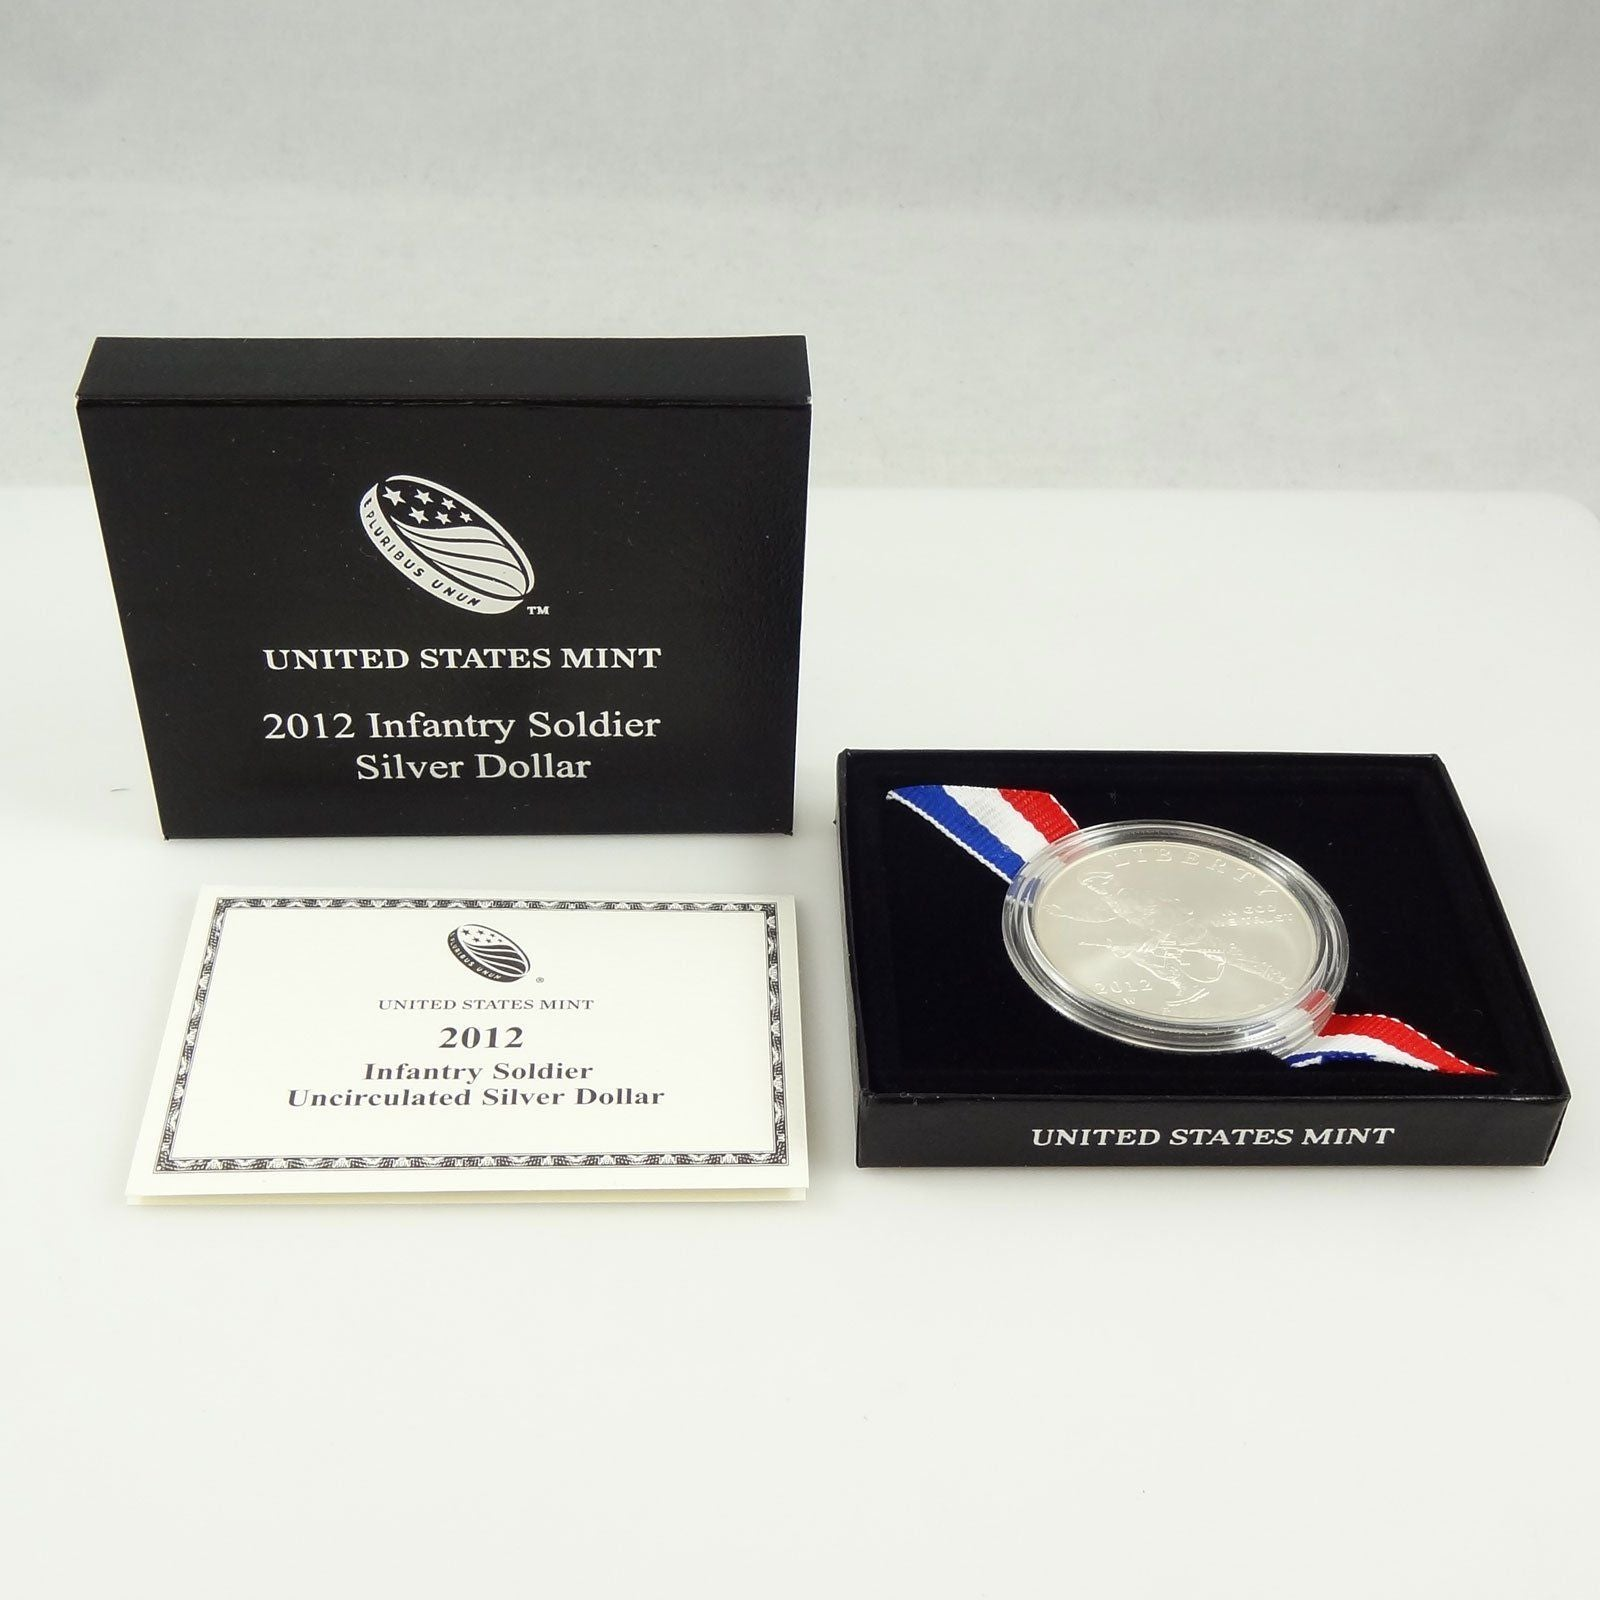 2012 Infantry Soldier Commemorative Silver Dollar Mint State